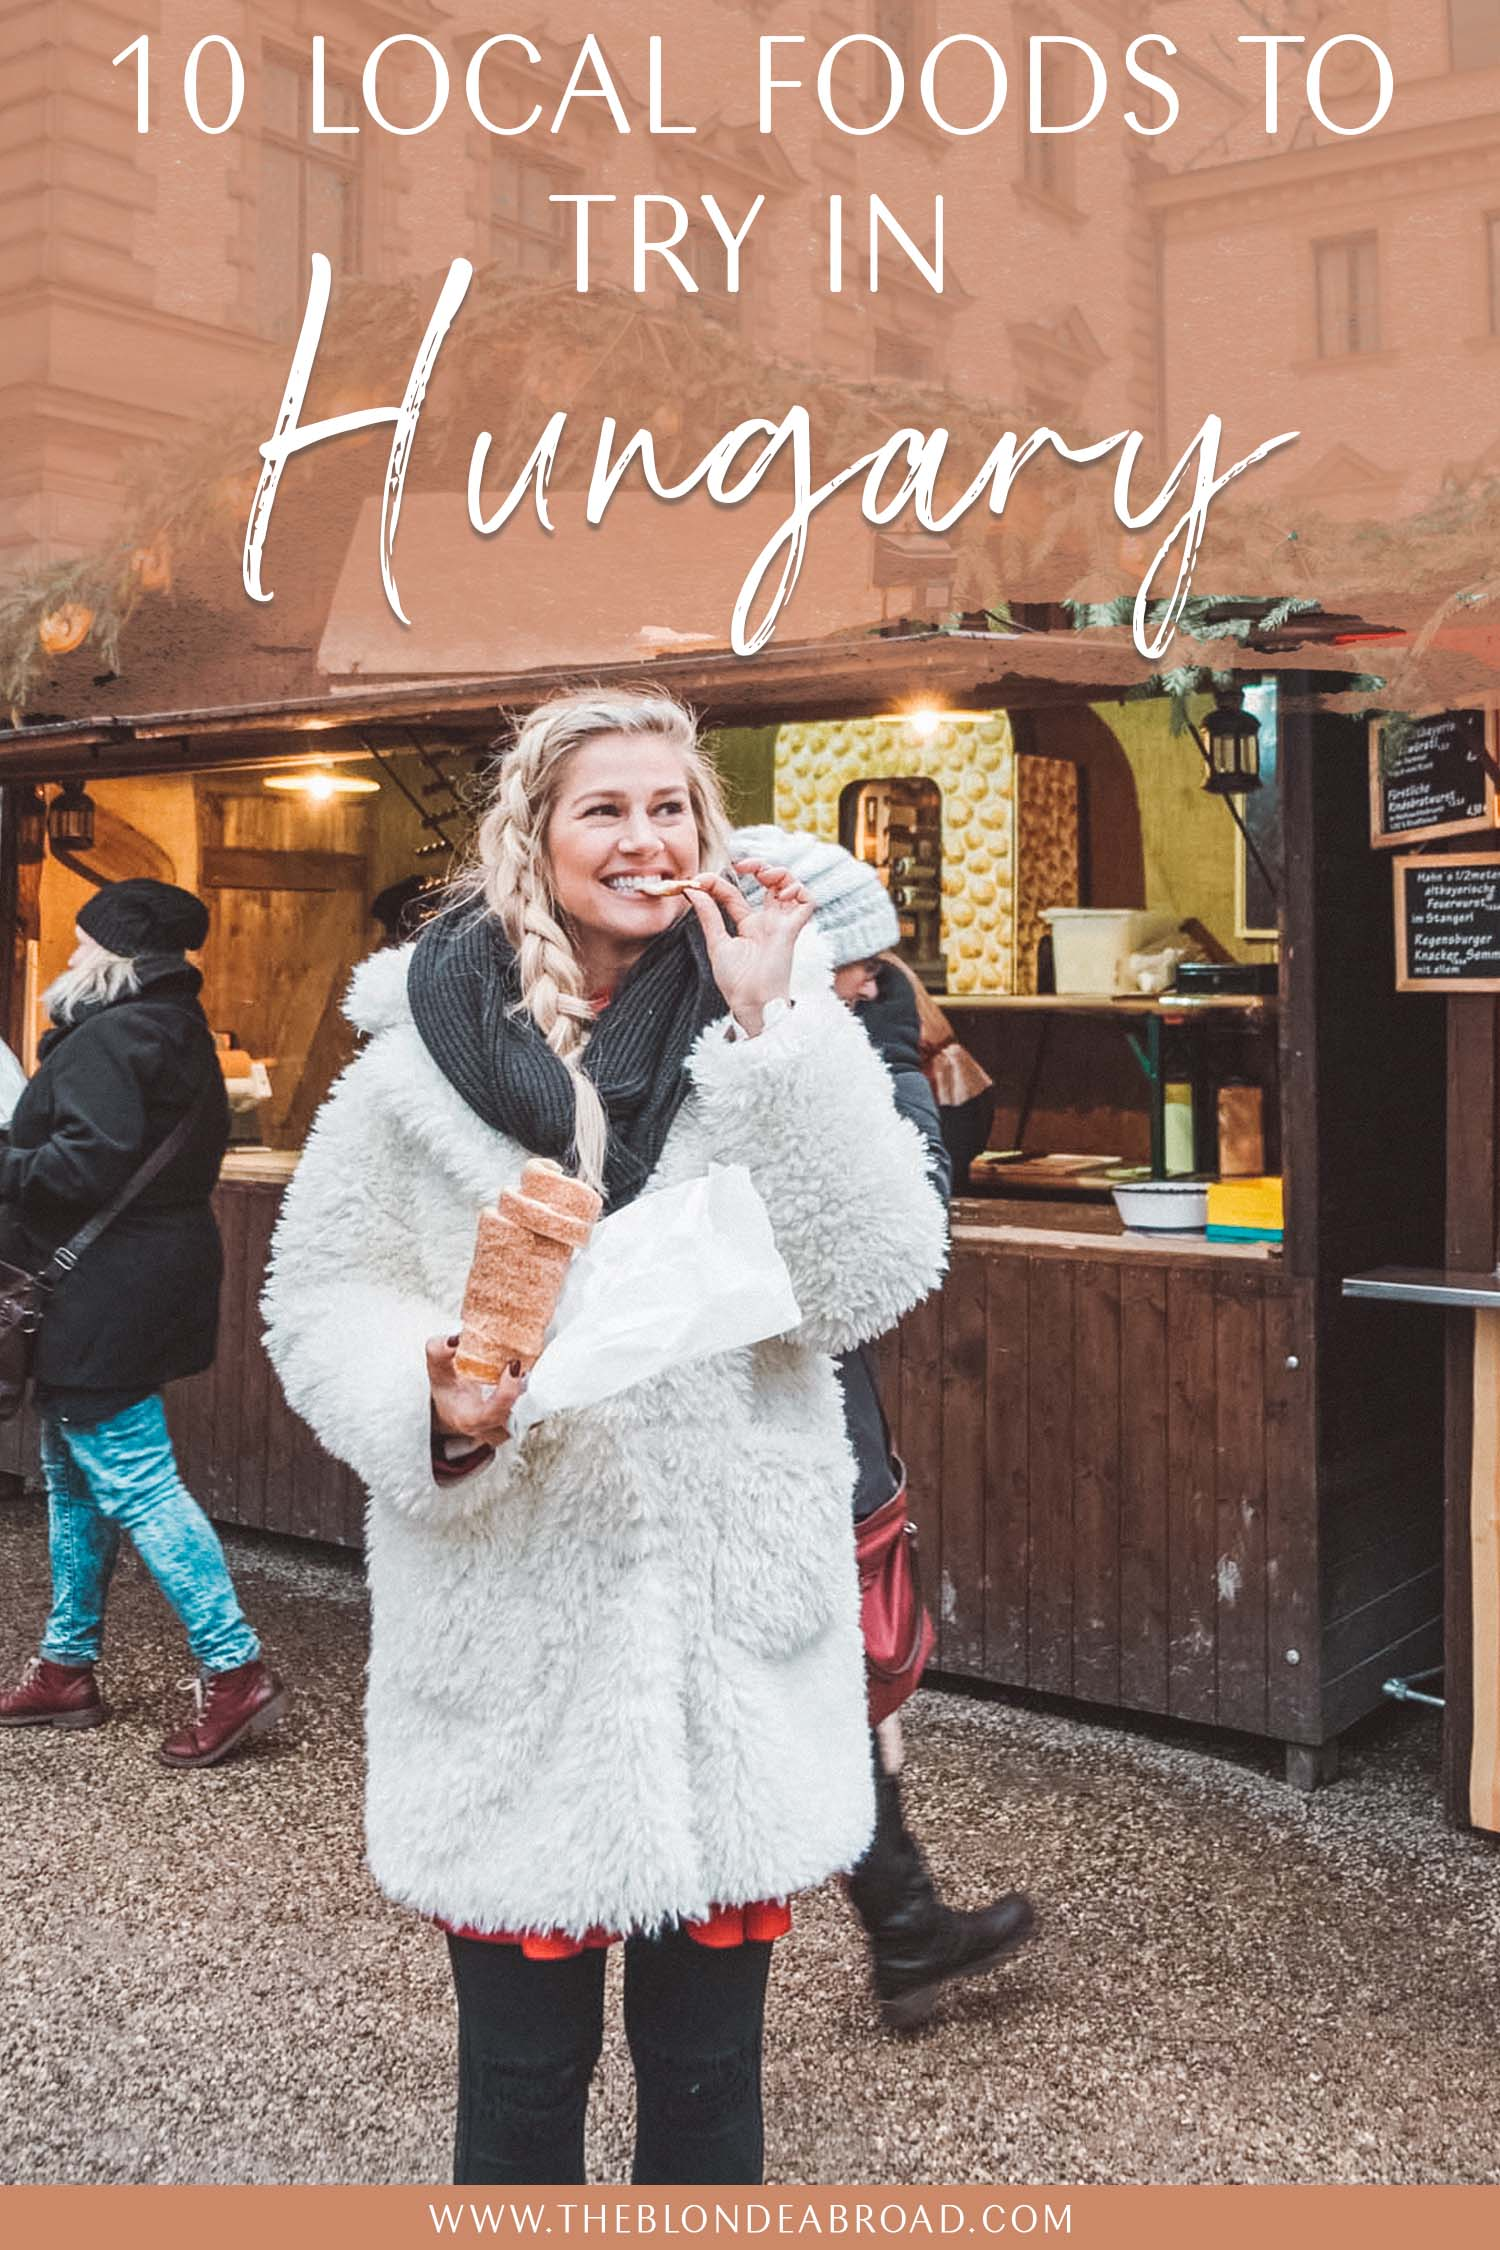 The title of local food in Hungary has been updated